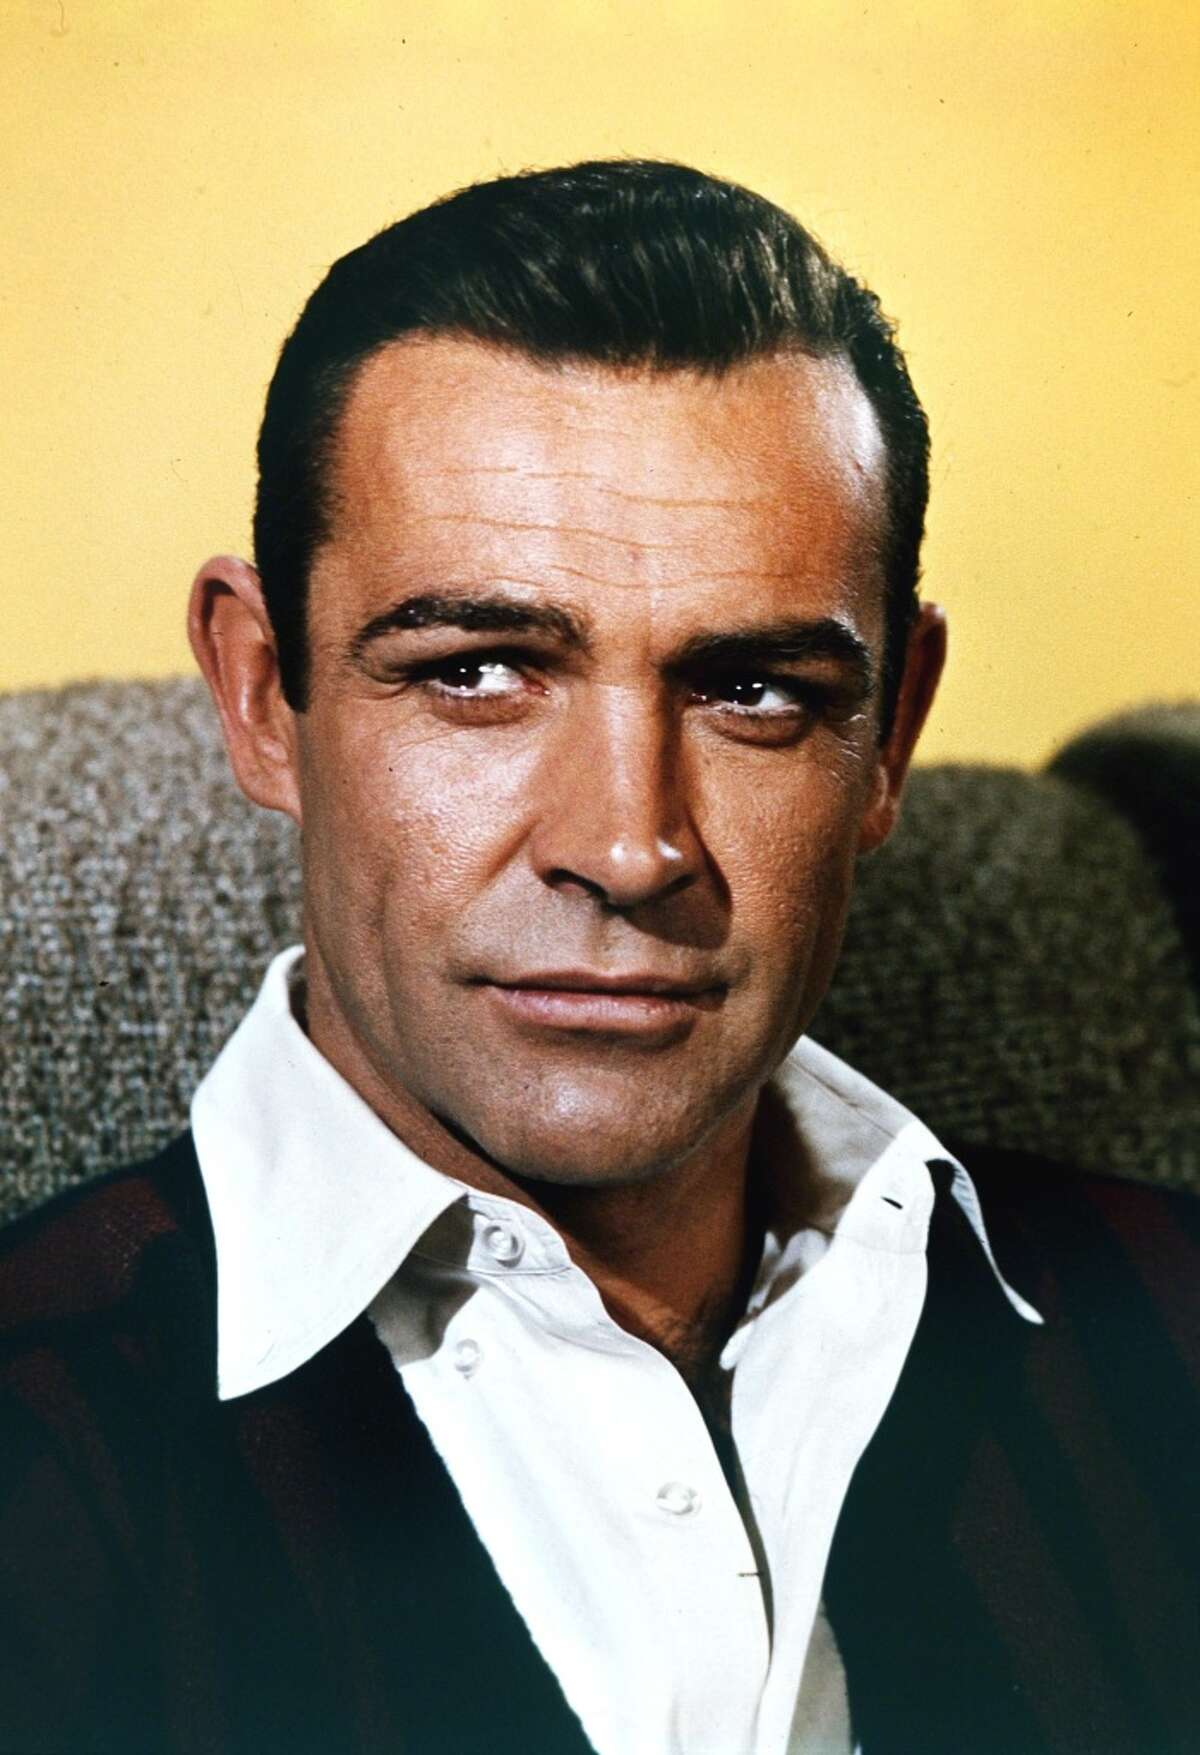 Born Bond Sean Connery once physically threw a gangster with the cartoon name of Johnny Stompanato off a set when the thug pointed a gun at him and co-star Lana Turner.